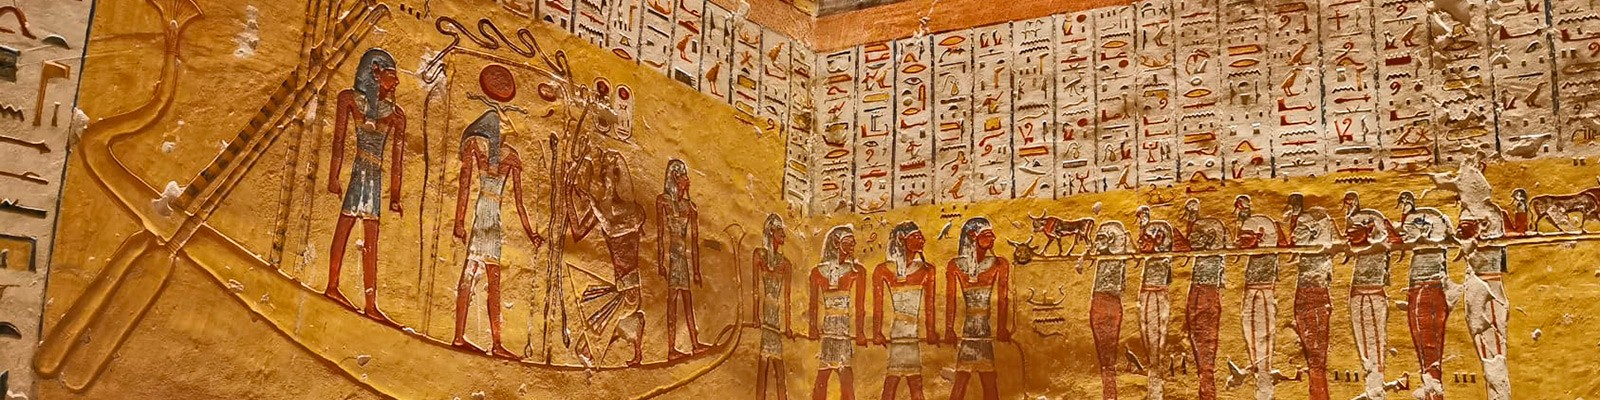 History of Luxor